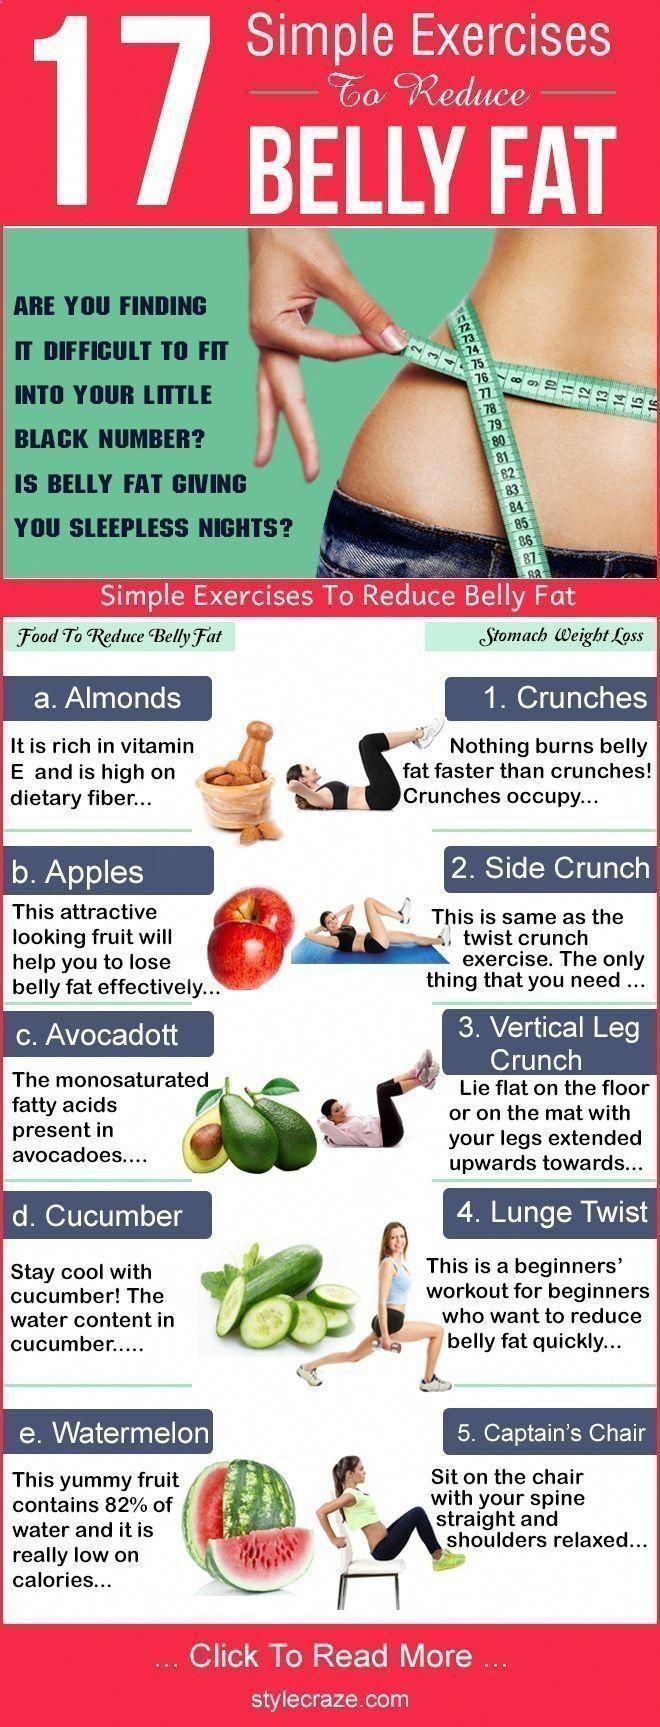 6 WAYS TO SHRINK BELLY FAT (5 OF THOSE DO NOT INCL…